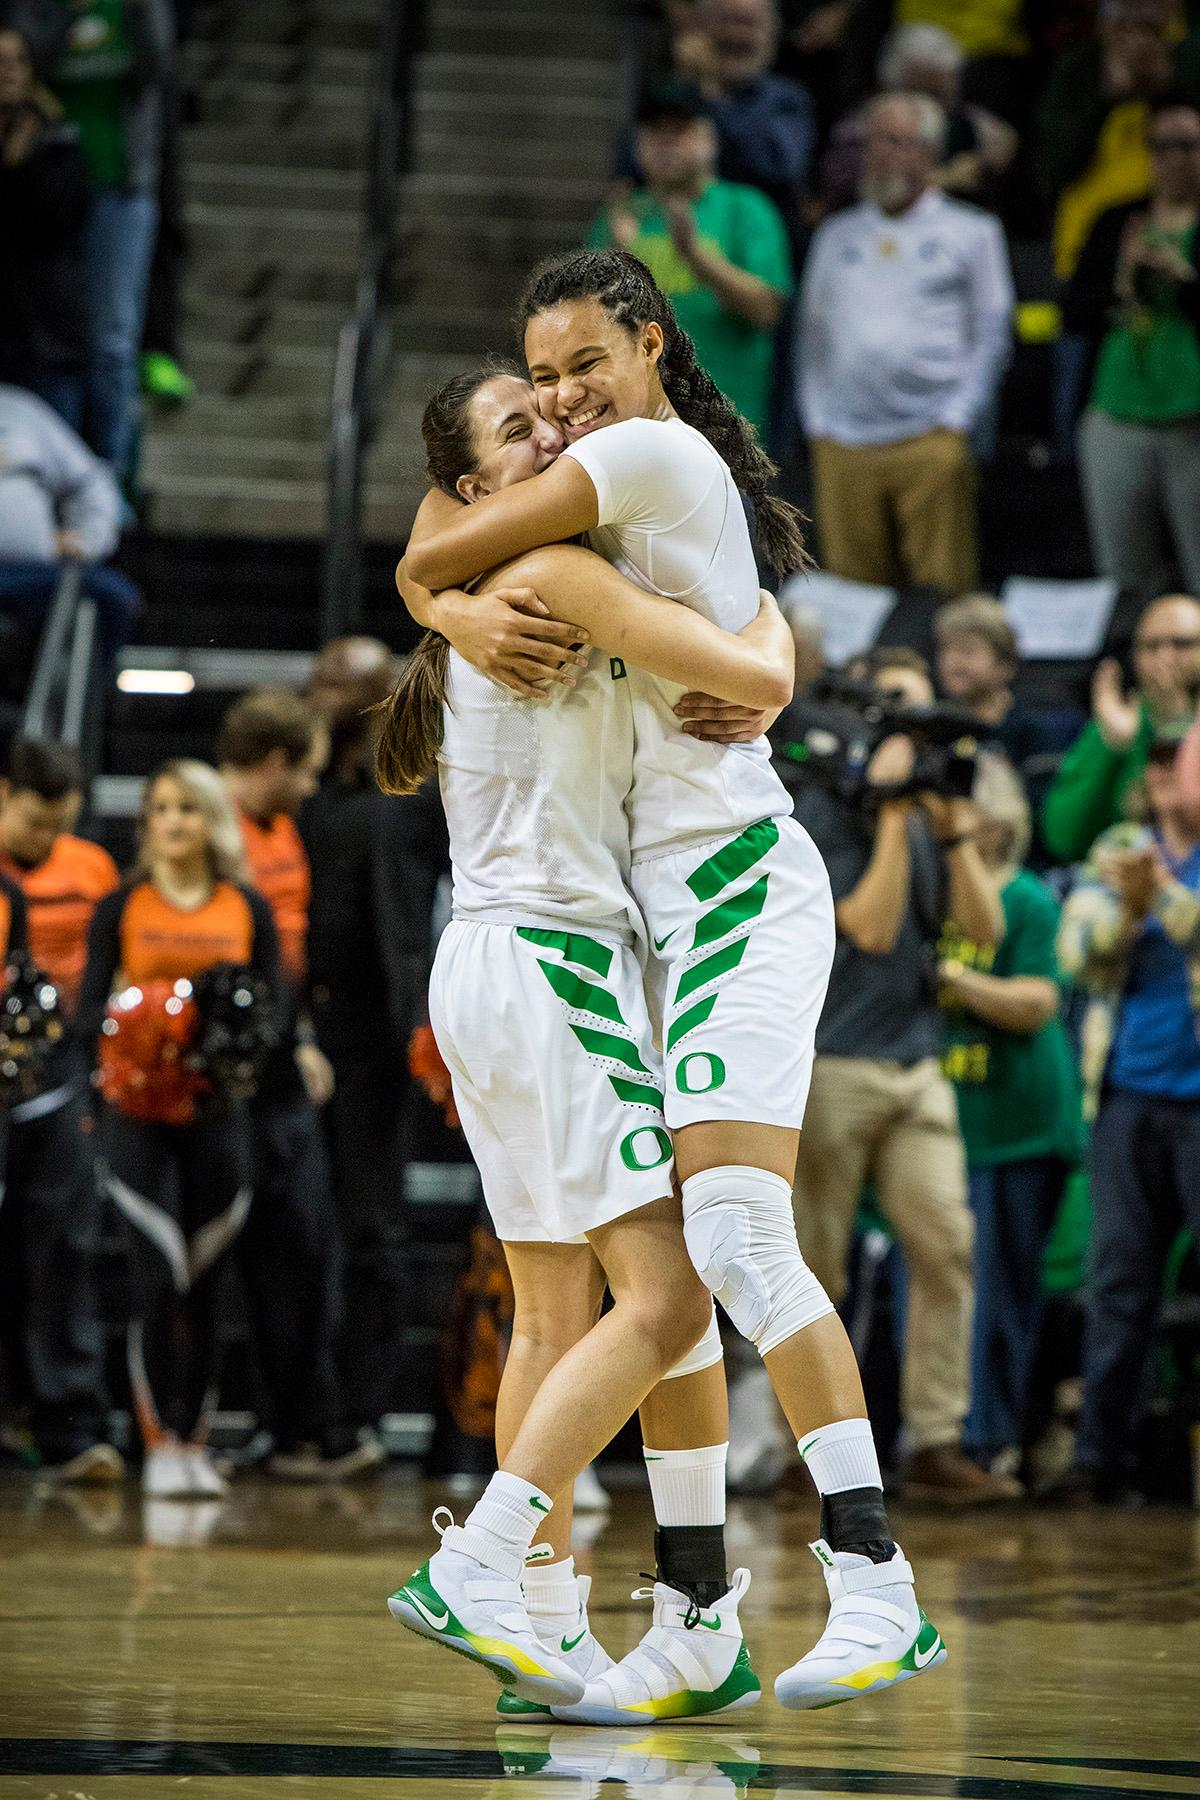 Oregon Ducks Maite Cazorla (#5) and Satou Sabally (#0) embrace after the game in celebration of their victory. The Oregon Ducks defeated the Oregon State Beavers 75-63 on Sunday afternoon in front of a crowd of 7,249 at Matthew Knight Arena. The Ducks and Beavers split the two game Civil War with the Beavers defeating the Ducks on Friday night in Corvallis. The Ducks had four players in double digits: Satou Sabally with 21 points, Maite Cazorla with 16, Sabrina Ionescu with 15, and Mallory McGwire with 14. The Ducks shot 48.4% from the floor compared to the Beavers 37.3%. The Ducks are now 7-1 in conference play. Photo by Rhianna Gelhart, Oregon News Lab